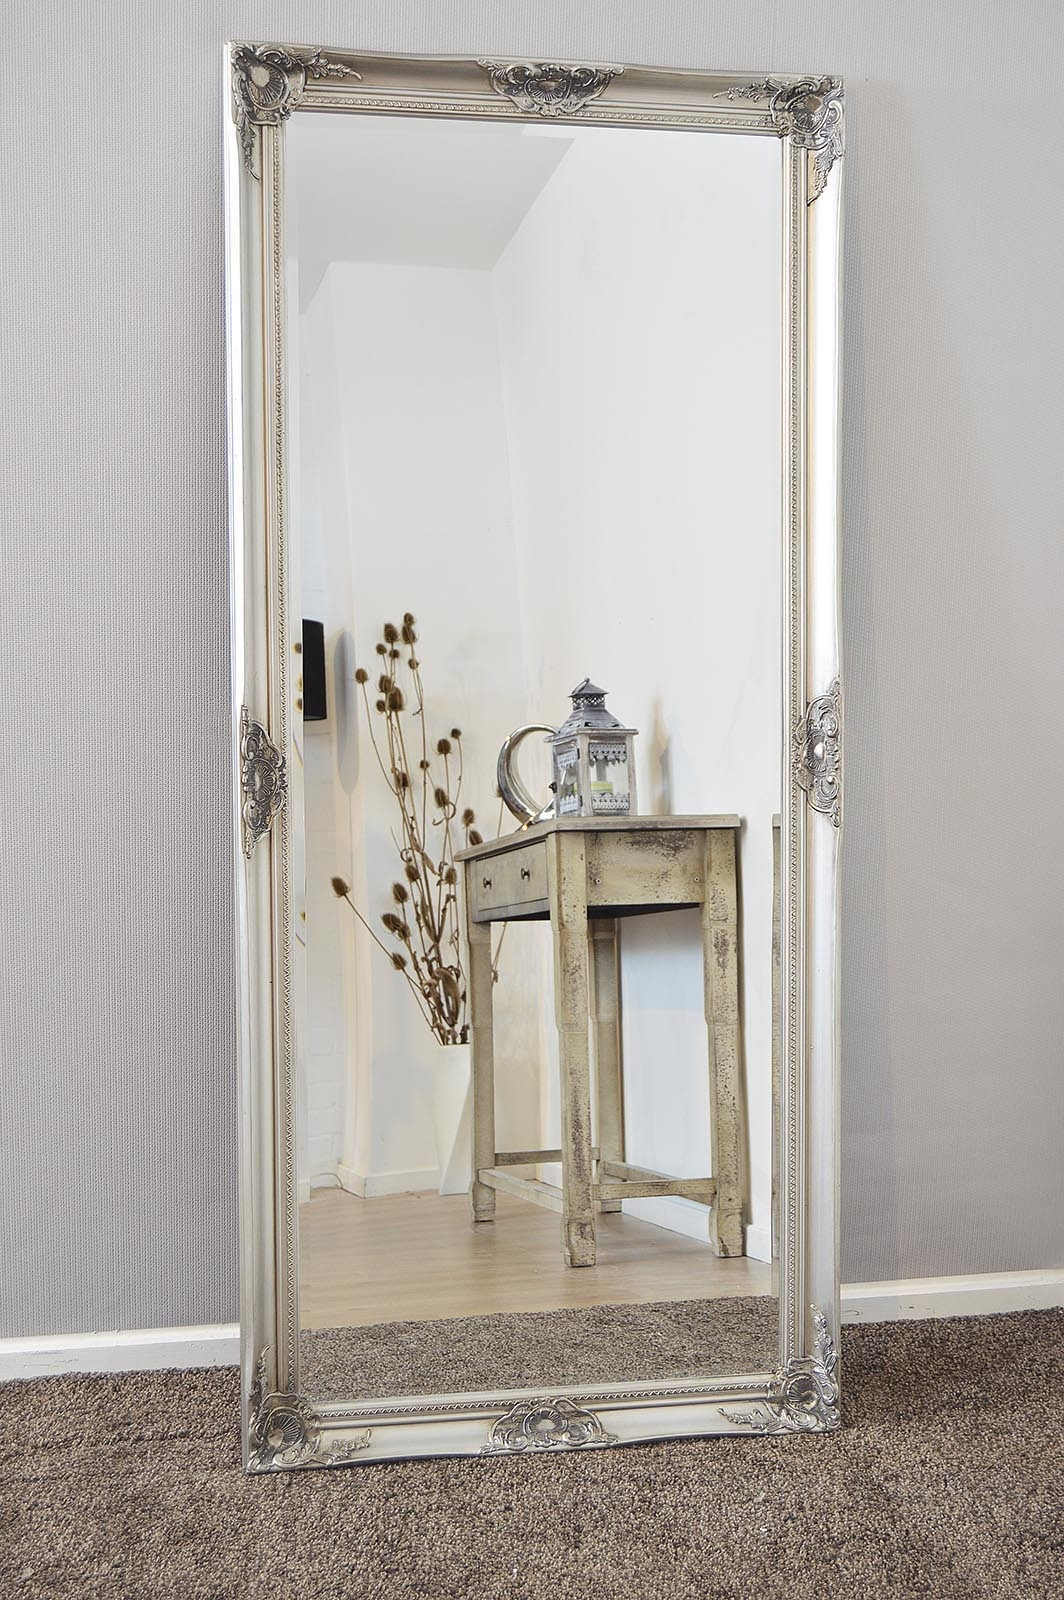 Silver Wall Mirrors Decorative Inarace Within Large Silver Vintage Mirror (Image 11 of 15)